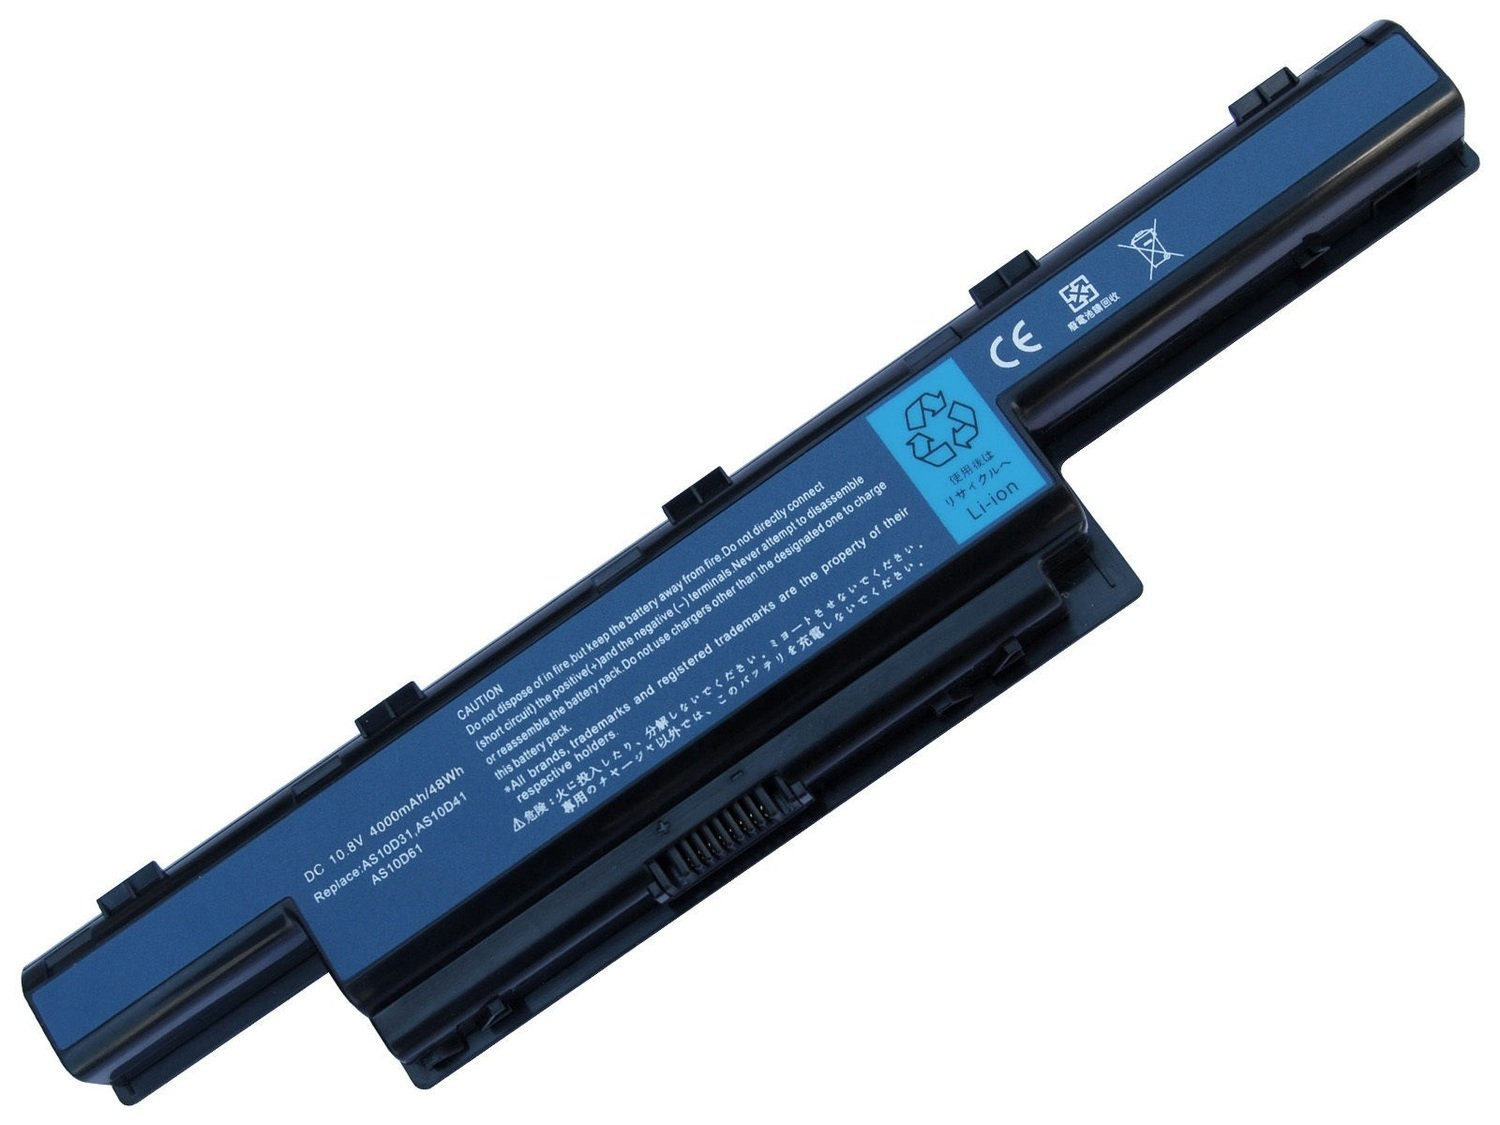 Acer aspire 5736 5741 5742 7551 7552 7552G 7741 Compatible laptop battery